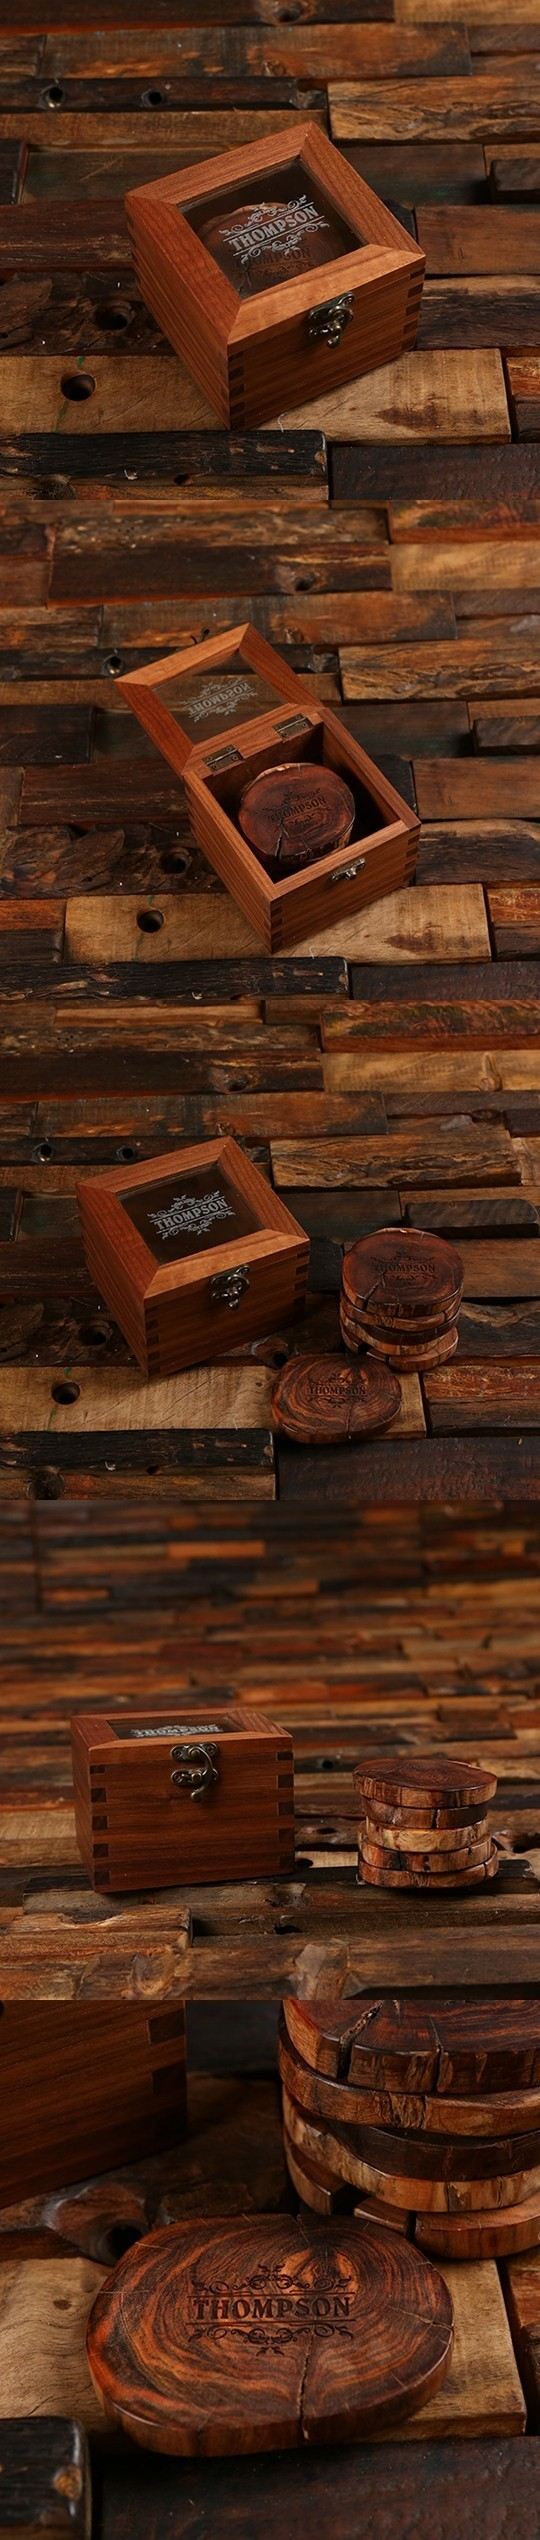 Personalized Wood Slice Coasters in Windowed Wood Gift-Box (Set of 5)